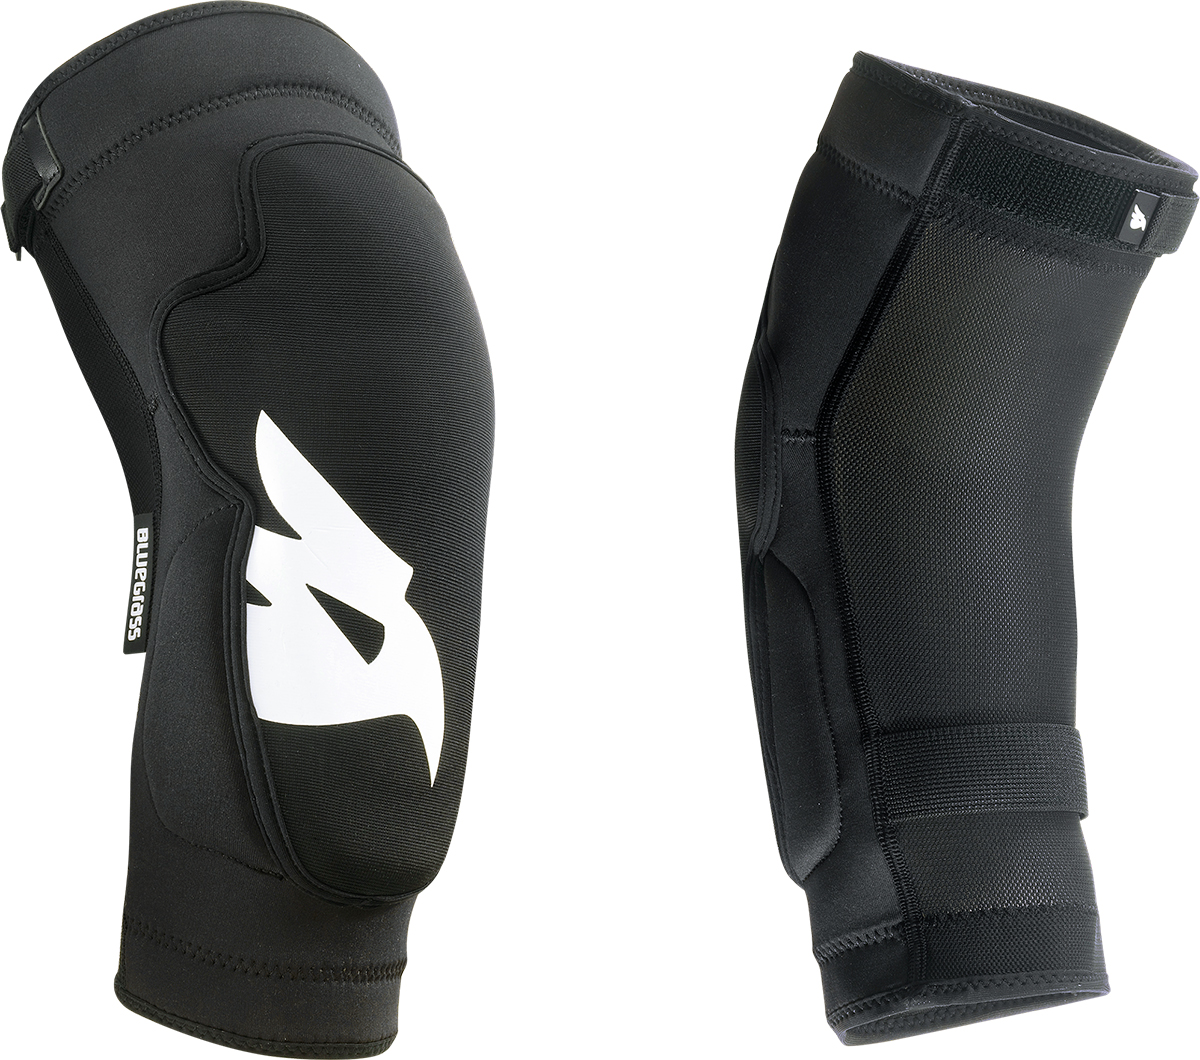 Bluegrass Solid Knee Guards | Beskyttelse